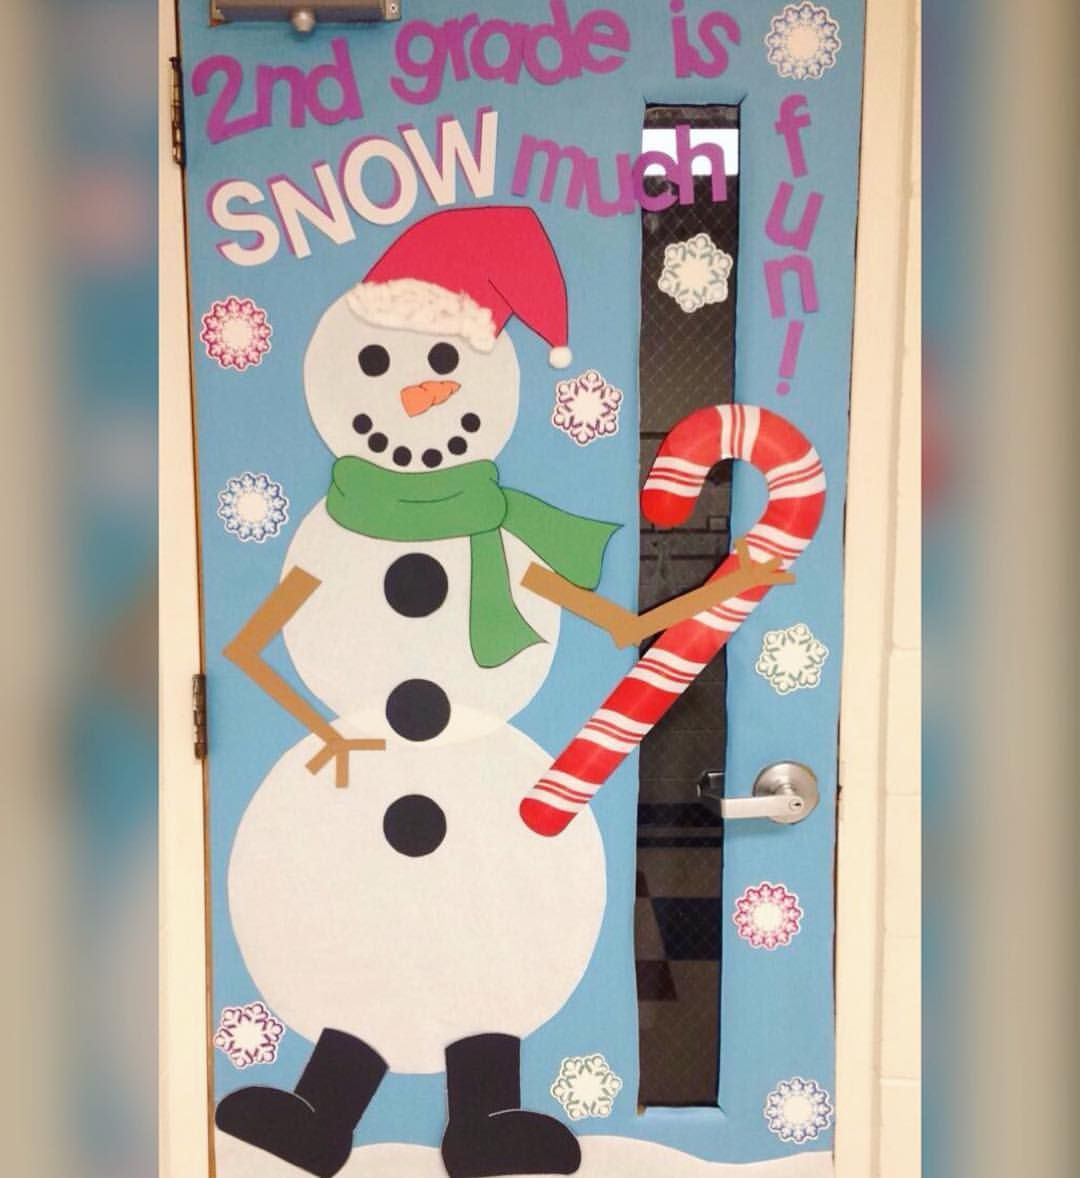 Second Grade Door Decoration Santa Hat And Candy Cane Can Be Switched Out For Top Had A Broom To Make Him Frosty